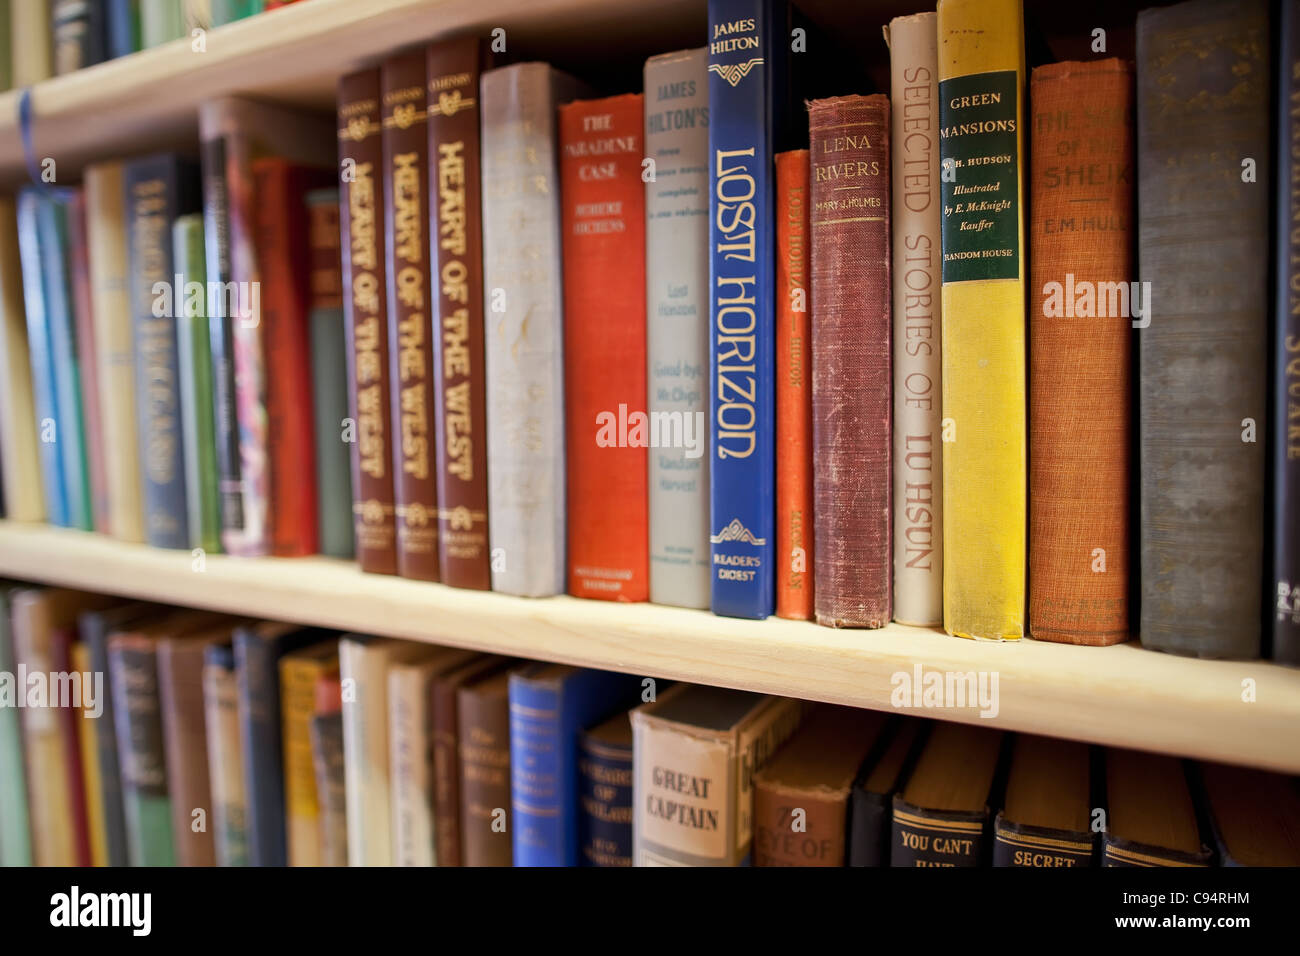 Hardcover books on shelves at a used bookstore. - Stock Image